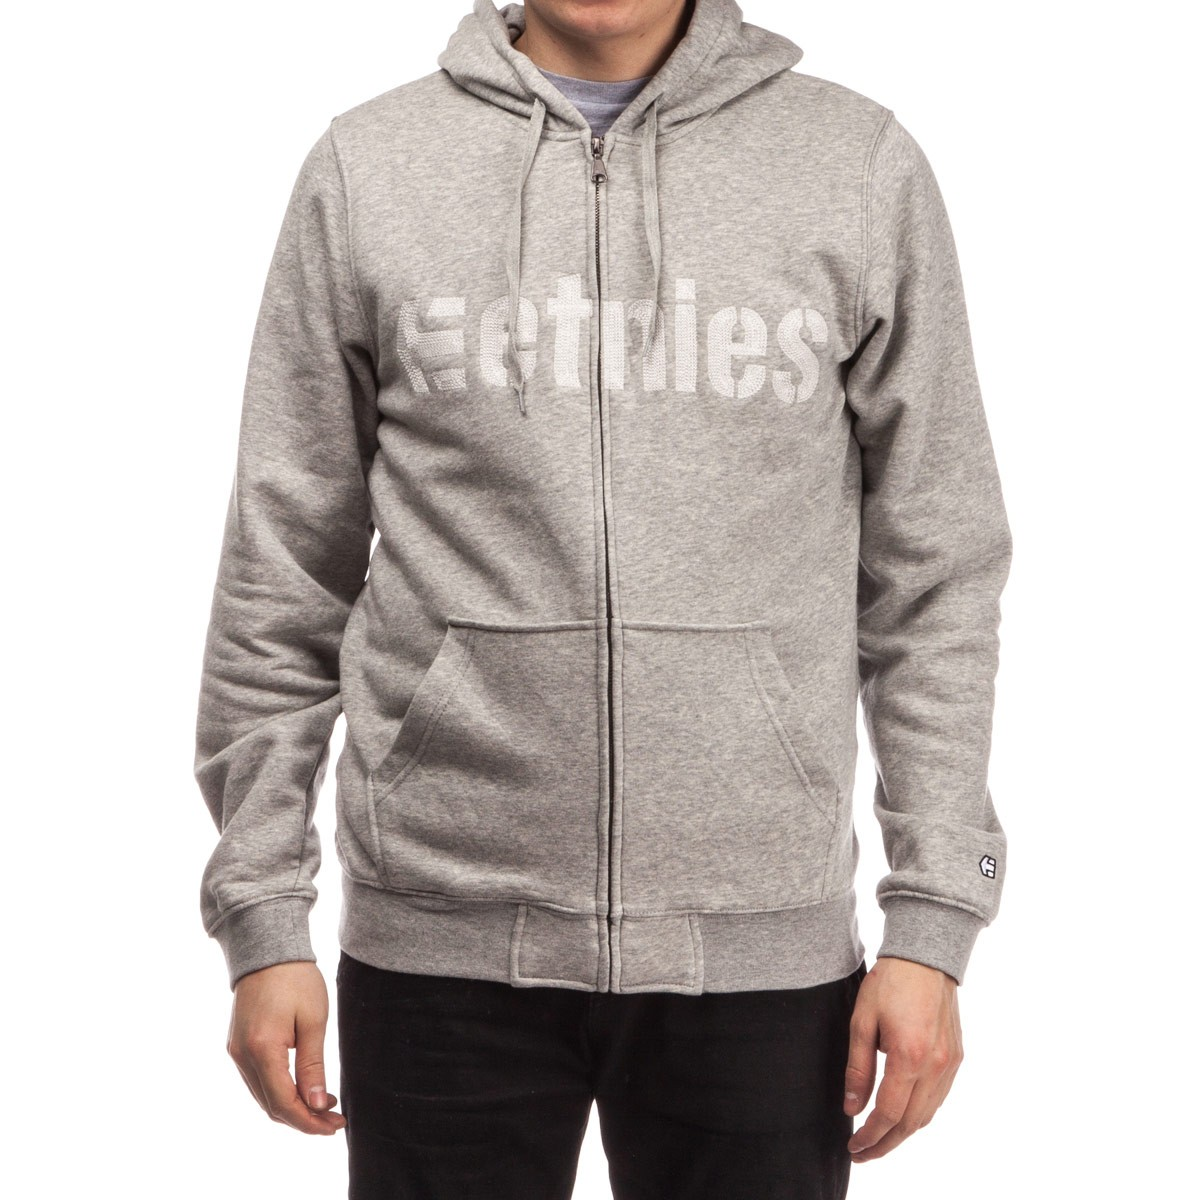 Etnies E-Lock Zip Hoodie - Grey/Heather